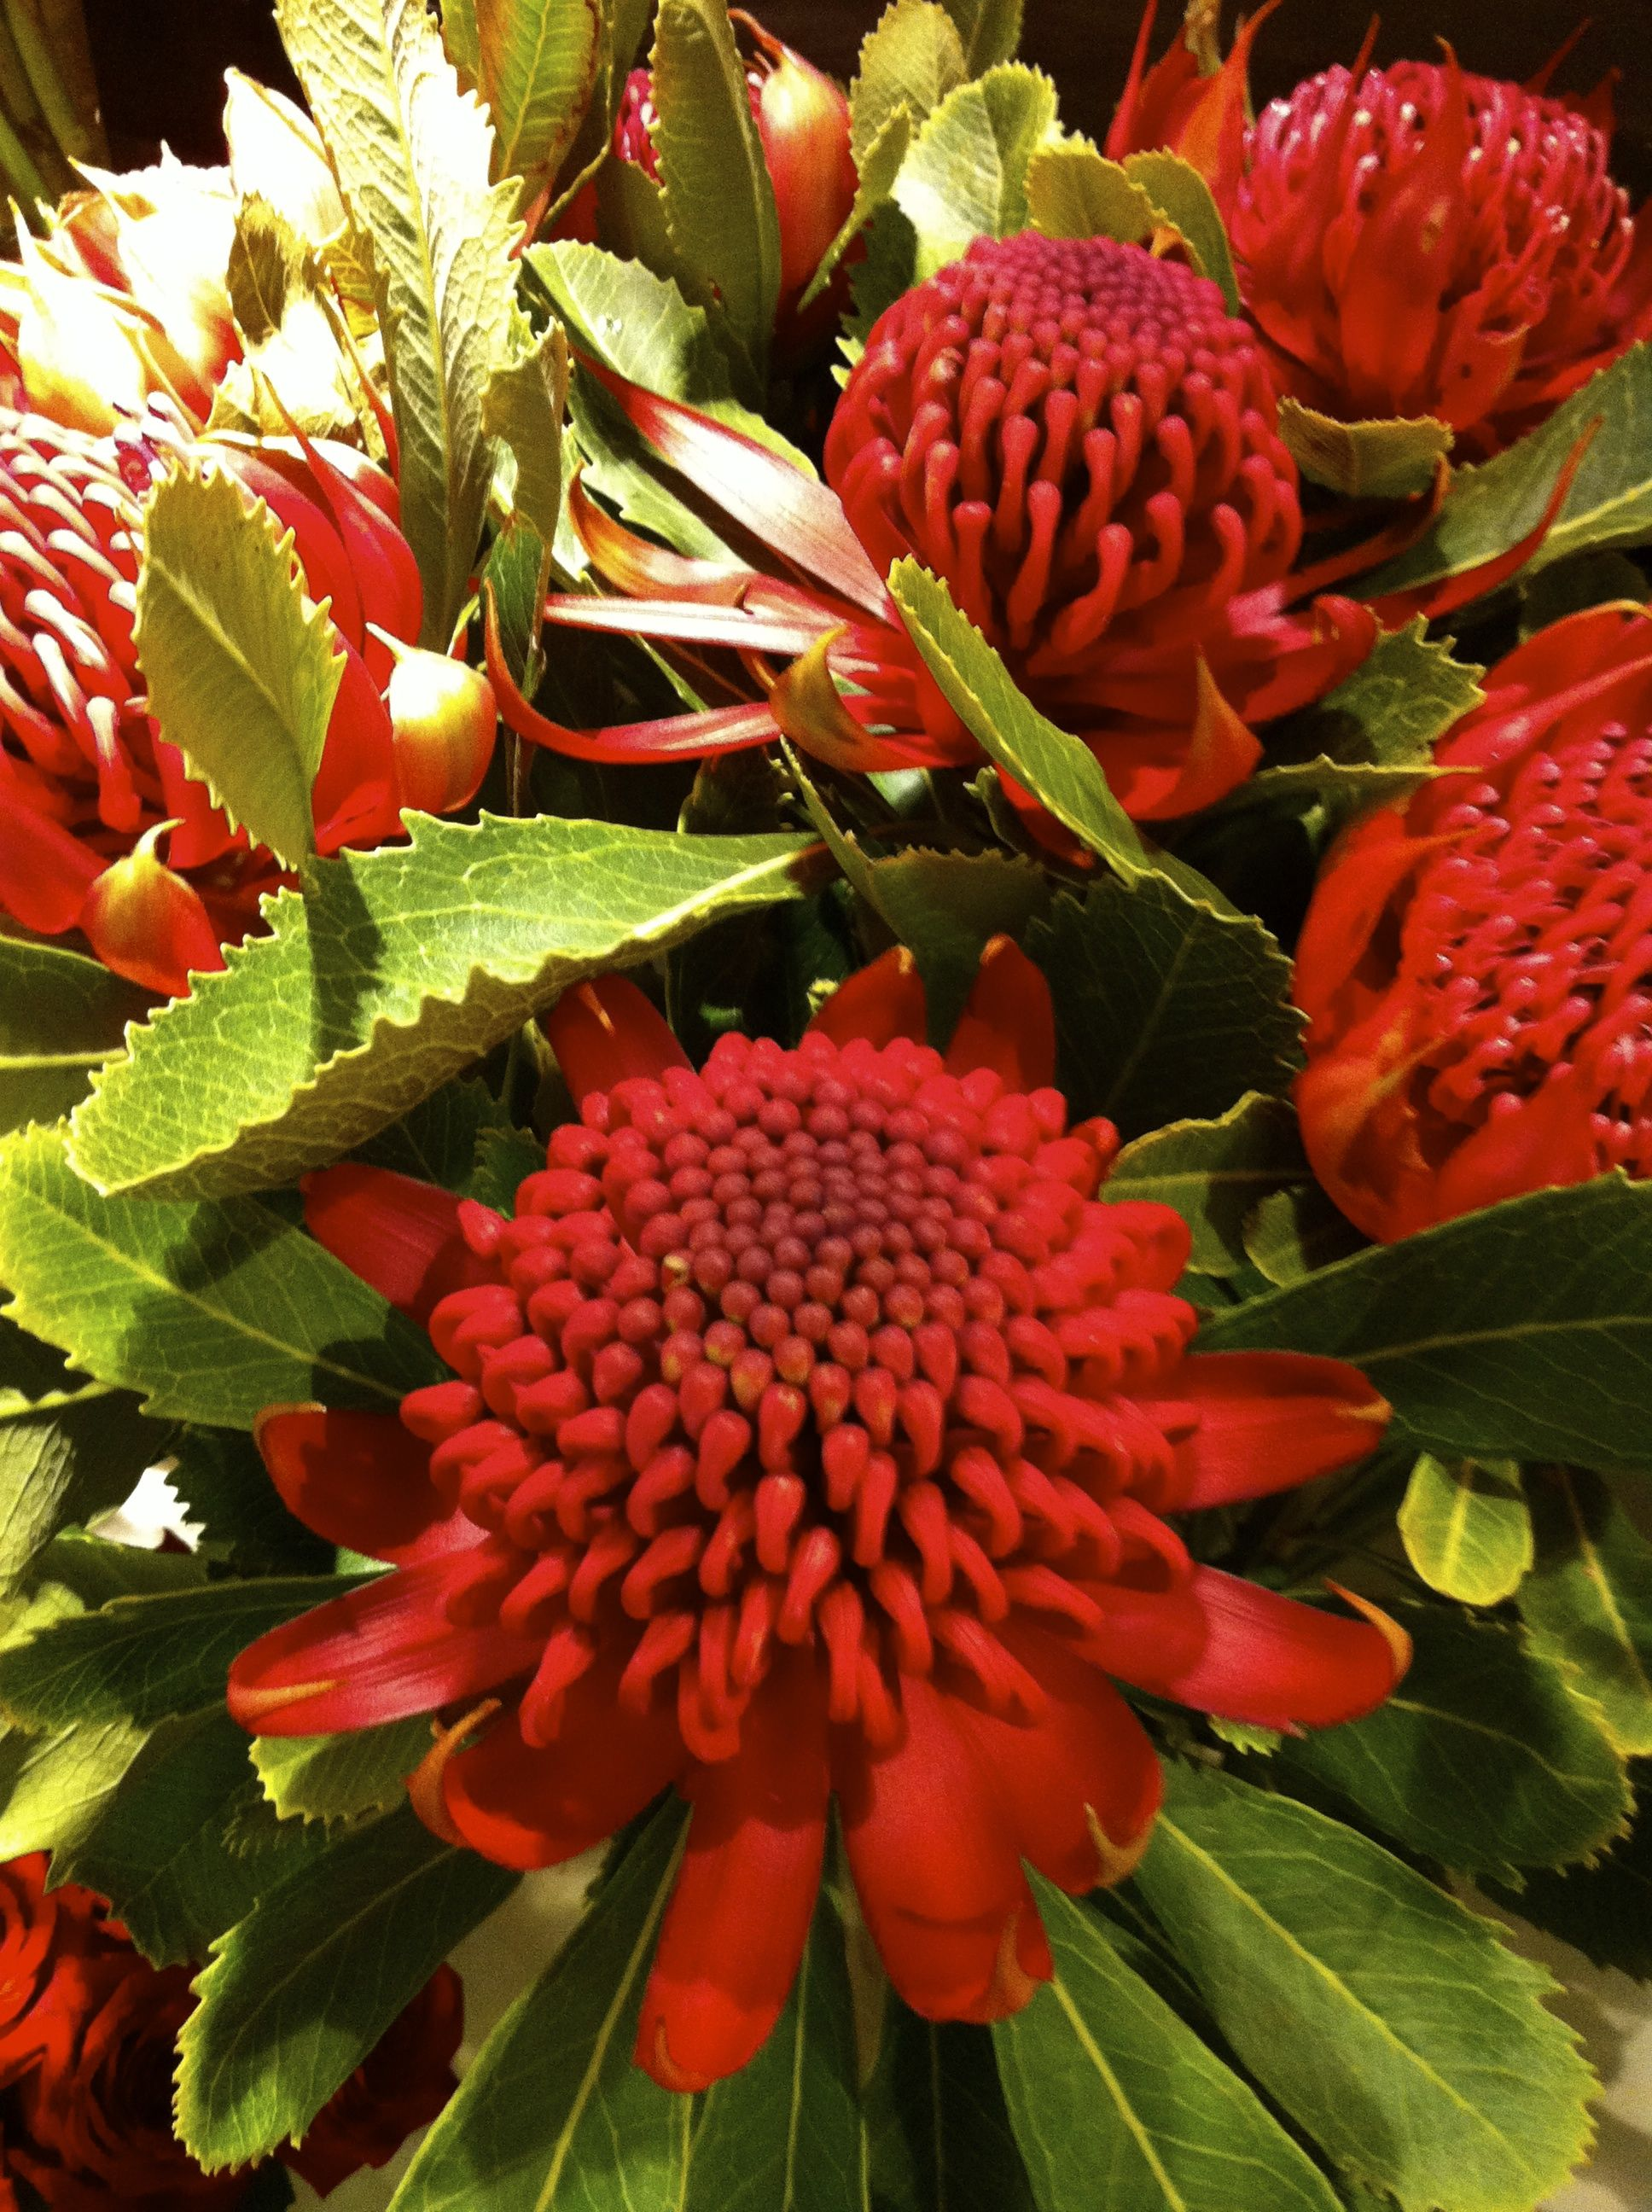 Waratah nsw state flower emblem all things aussie